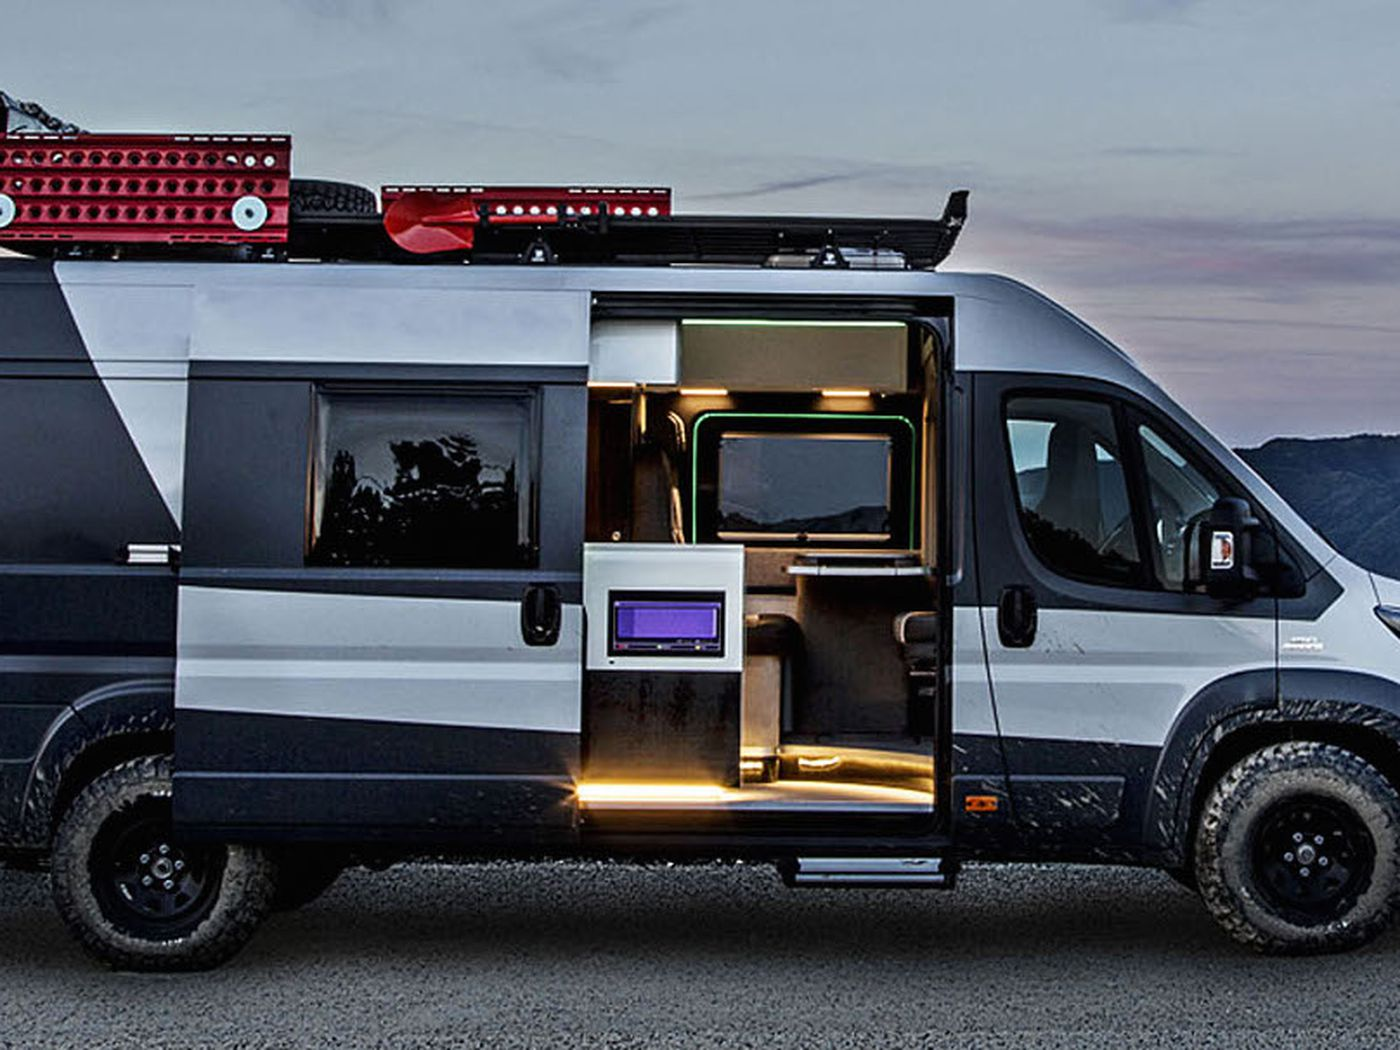 Camper Cars Italian Car Company Fiat Goes Big With Sporty Camper Vans Curbed